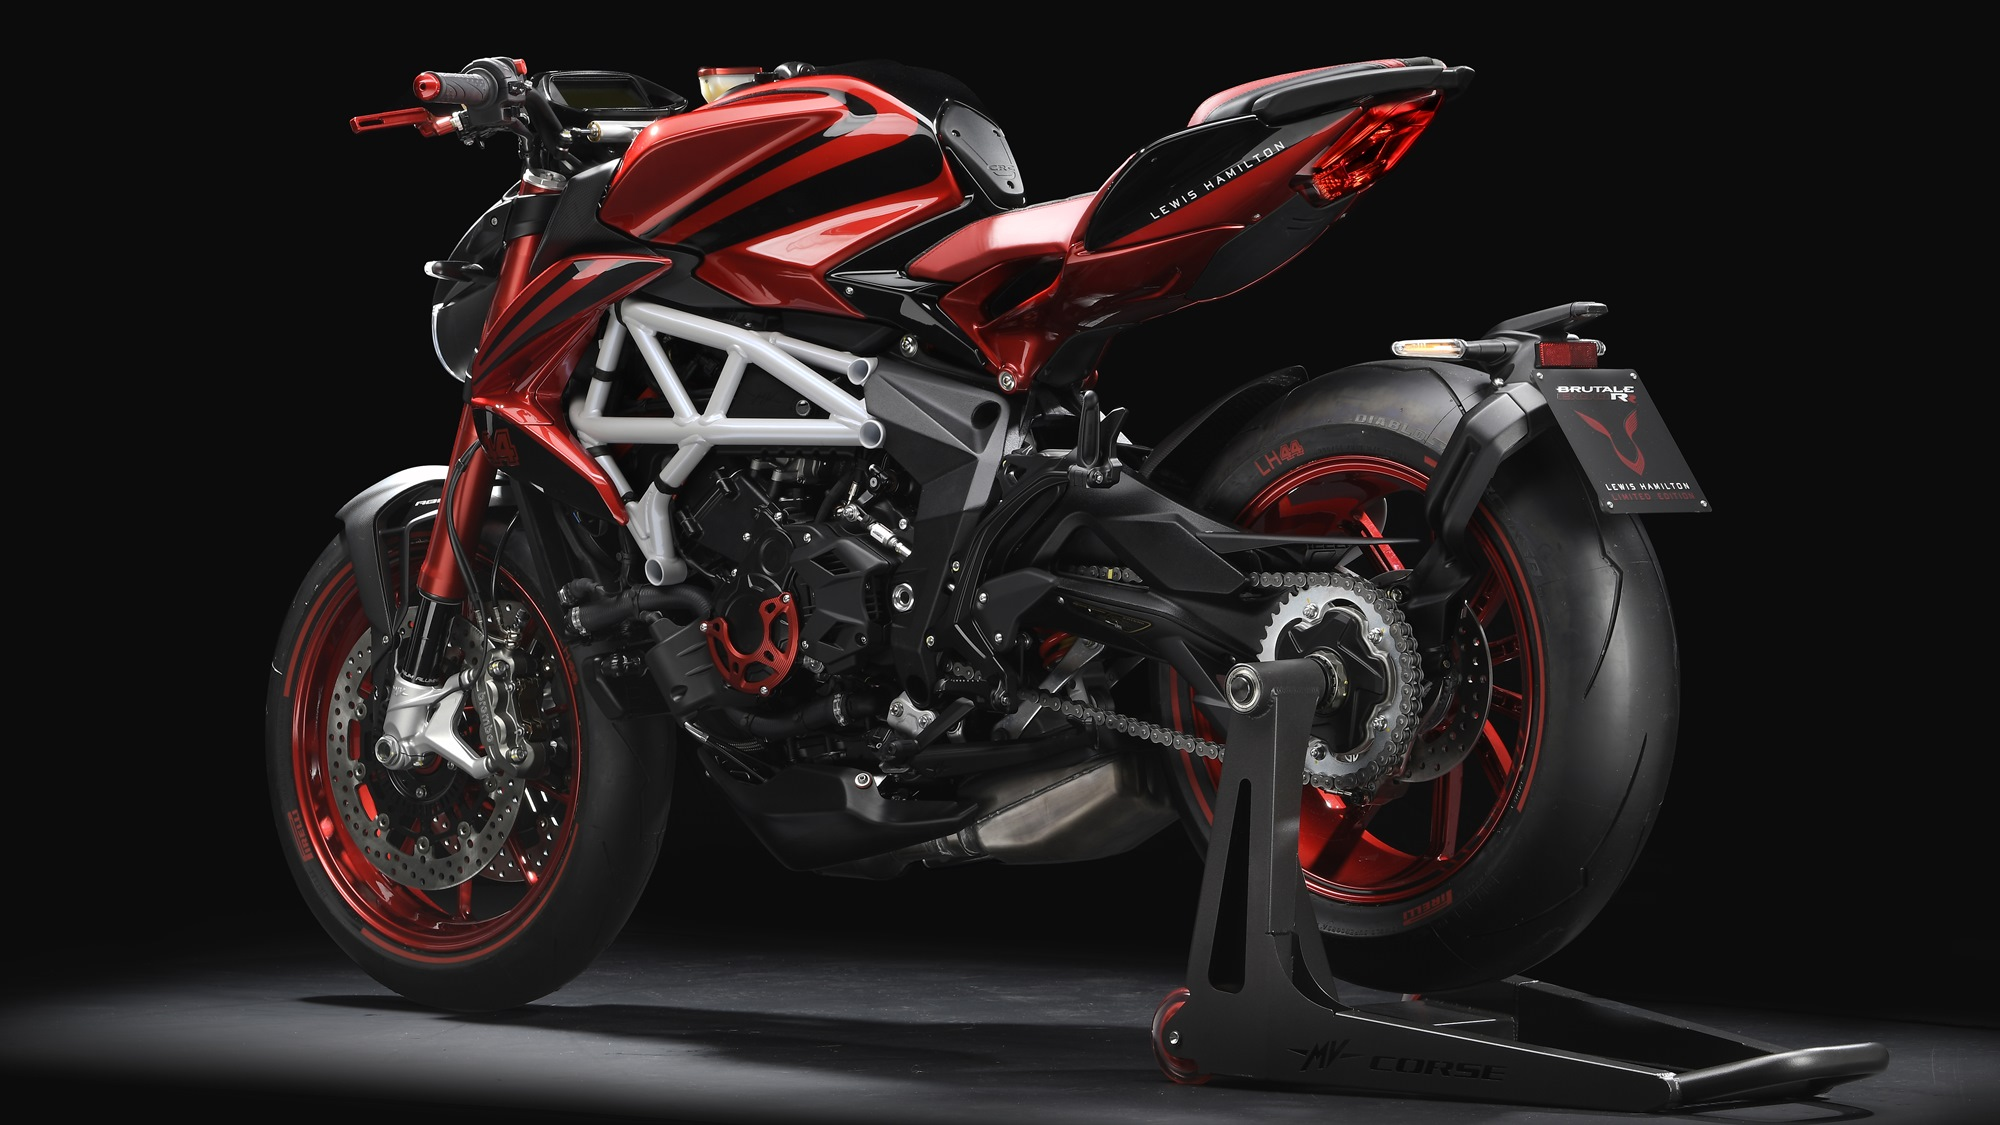 mv agusta brutale 800 rr lh44 hd wallpaper | iamabiker